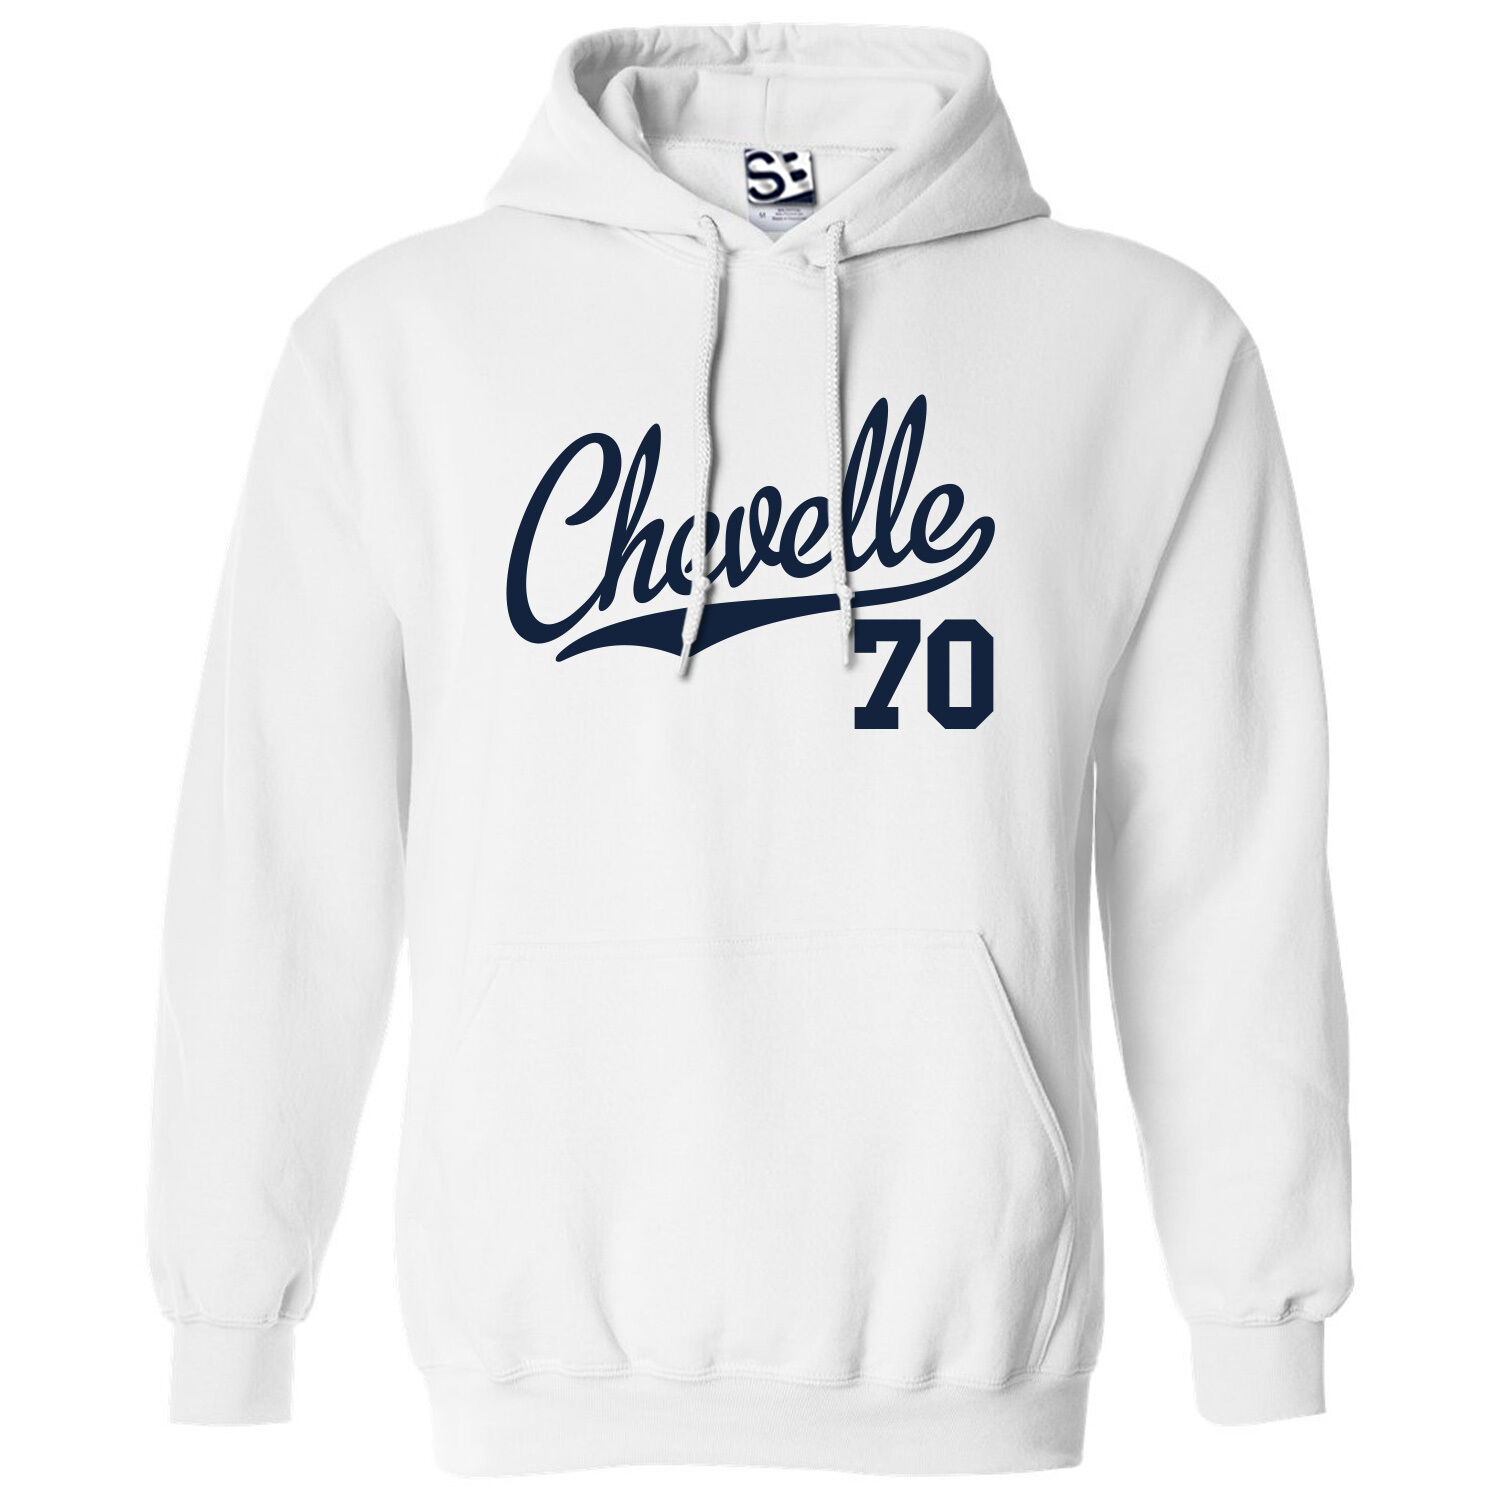 Chevelle 70 Script & Tail HOODIE - Hooded 1970 Muscle Car Sweatshirt All colors